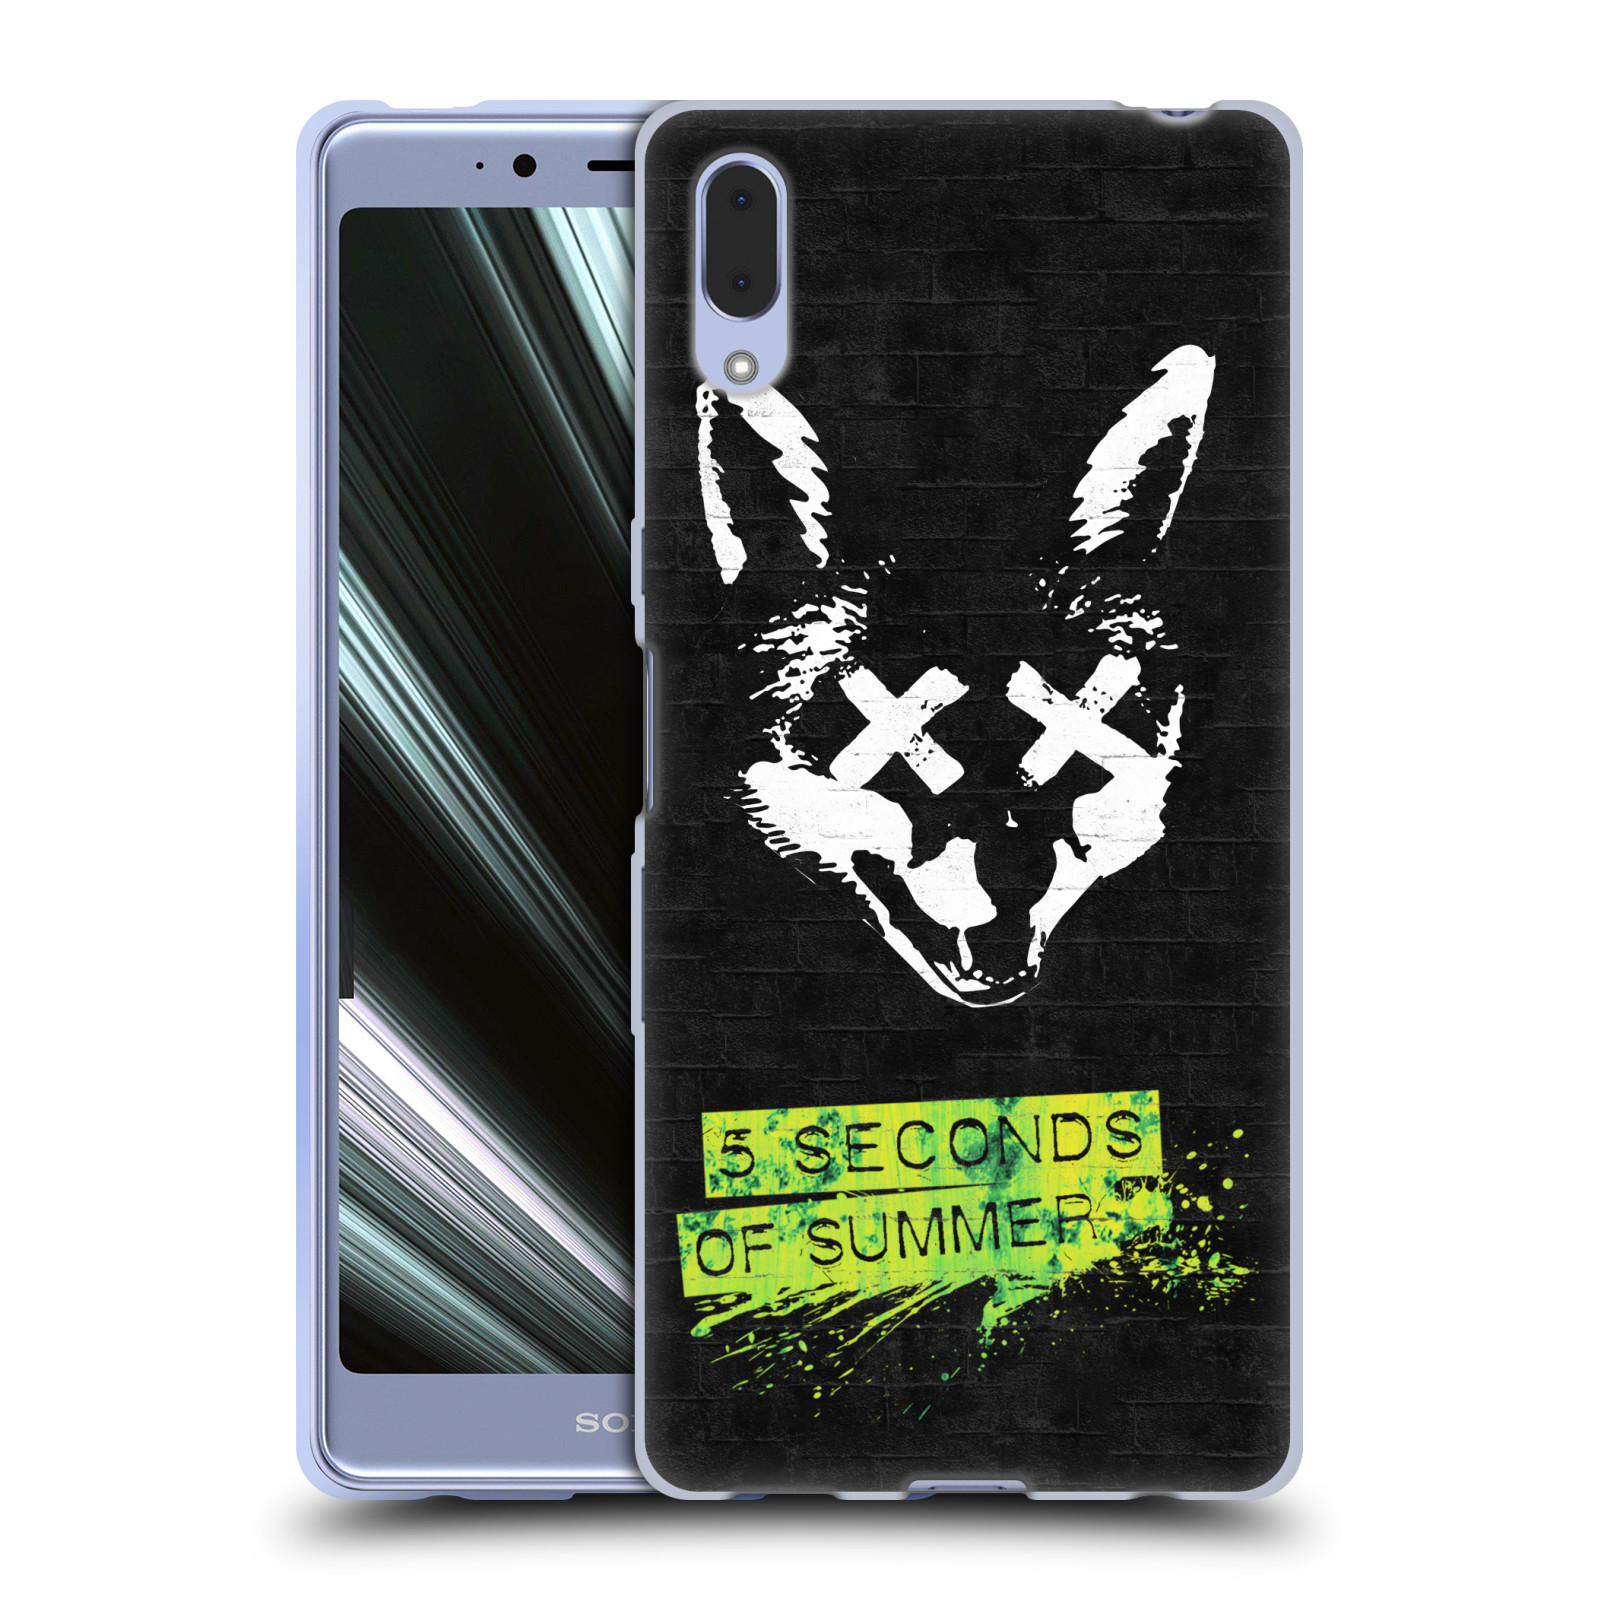 Silikonové pouzdro na mobil Sony Xperia L3 - Head Case - 5 Seconds of Summer - Fox